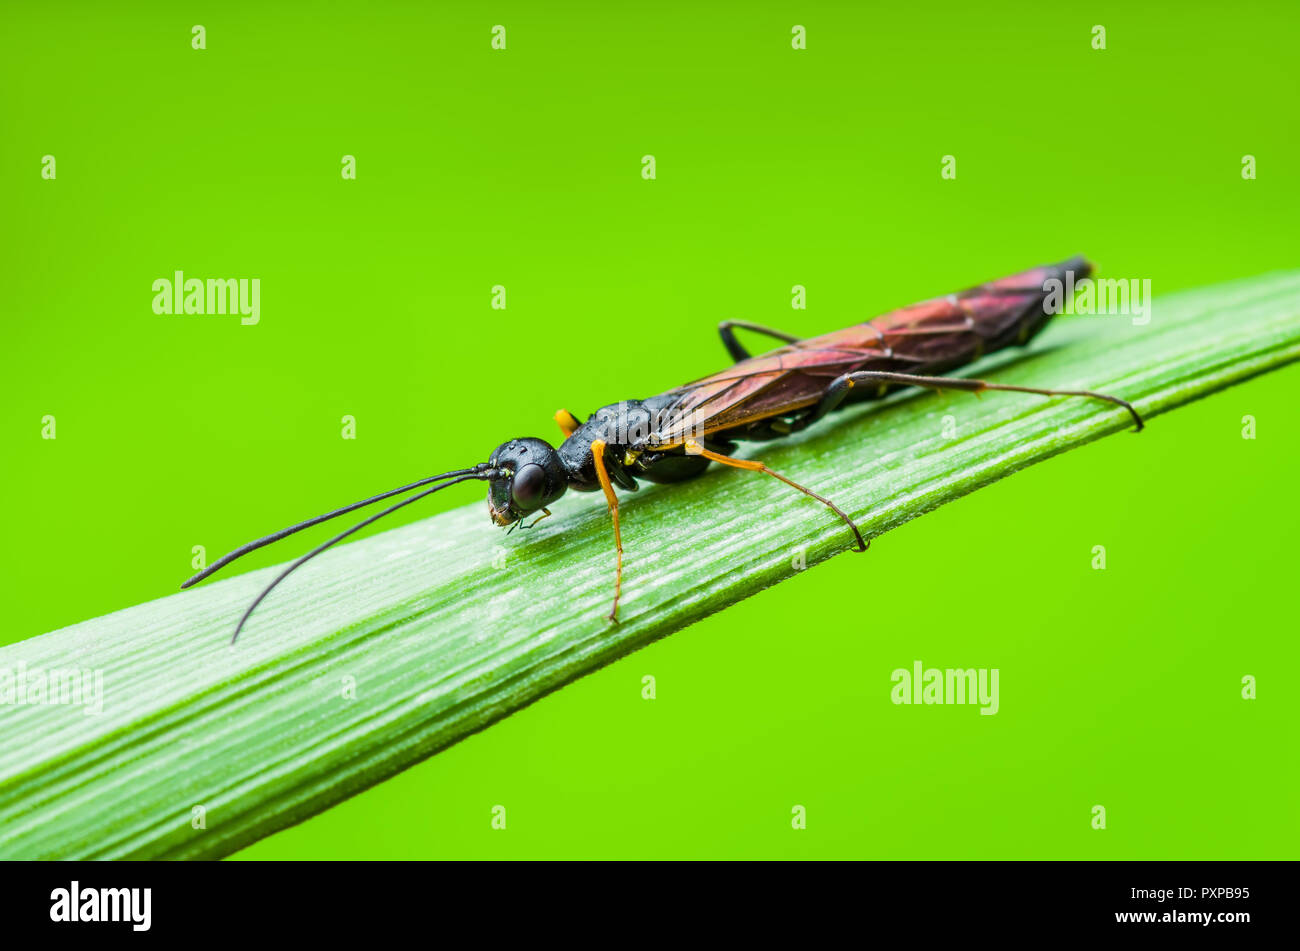 Exotic Parasitoid Wasp Fly Diptera Insect on Green Grass - Stock Image